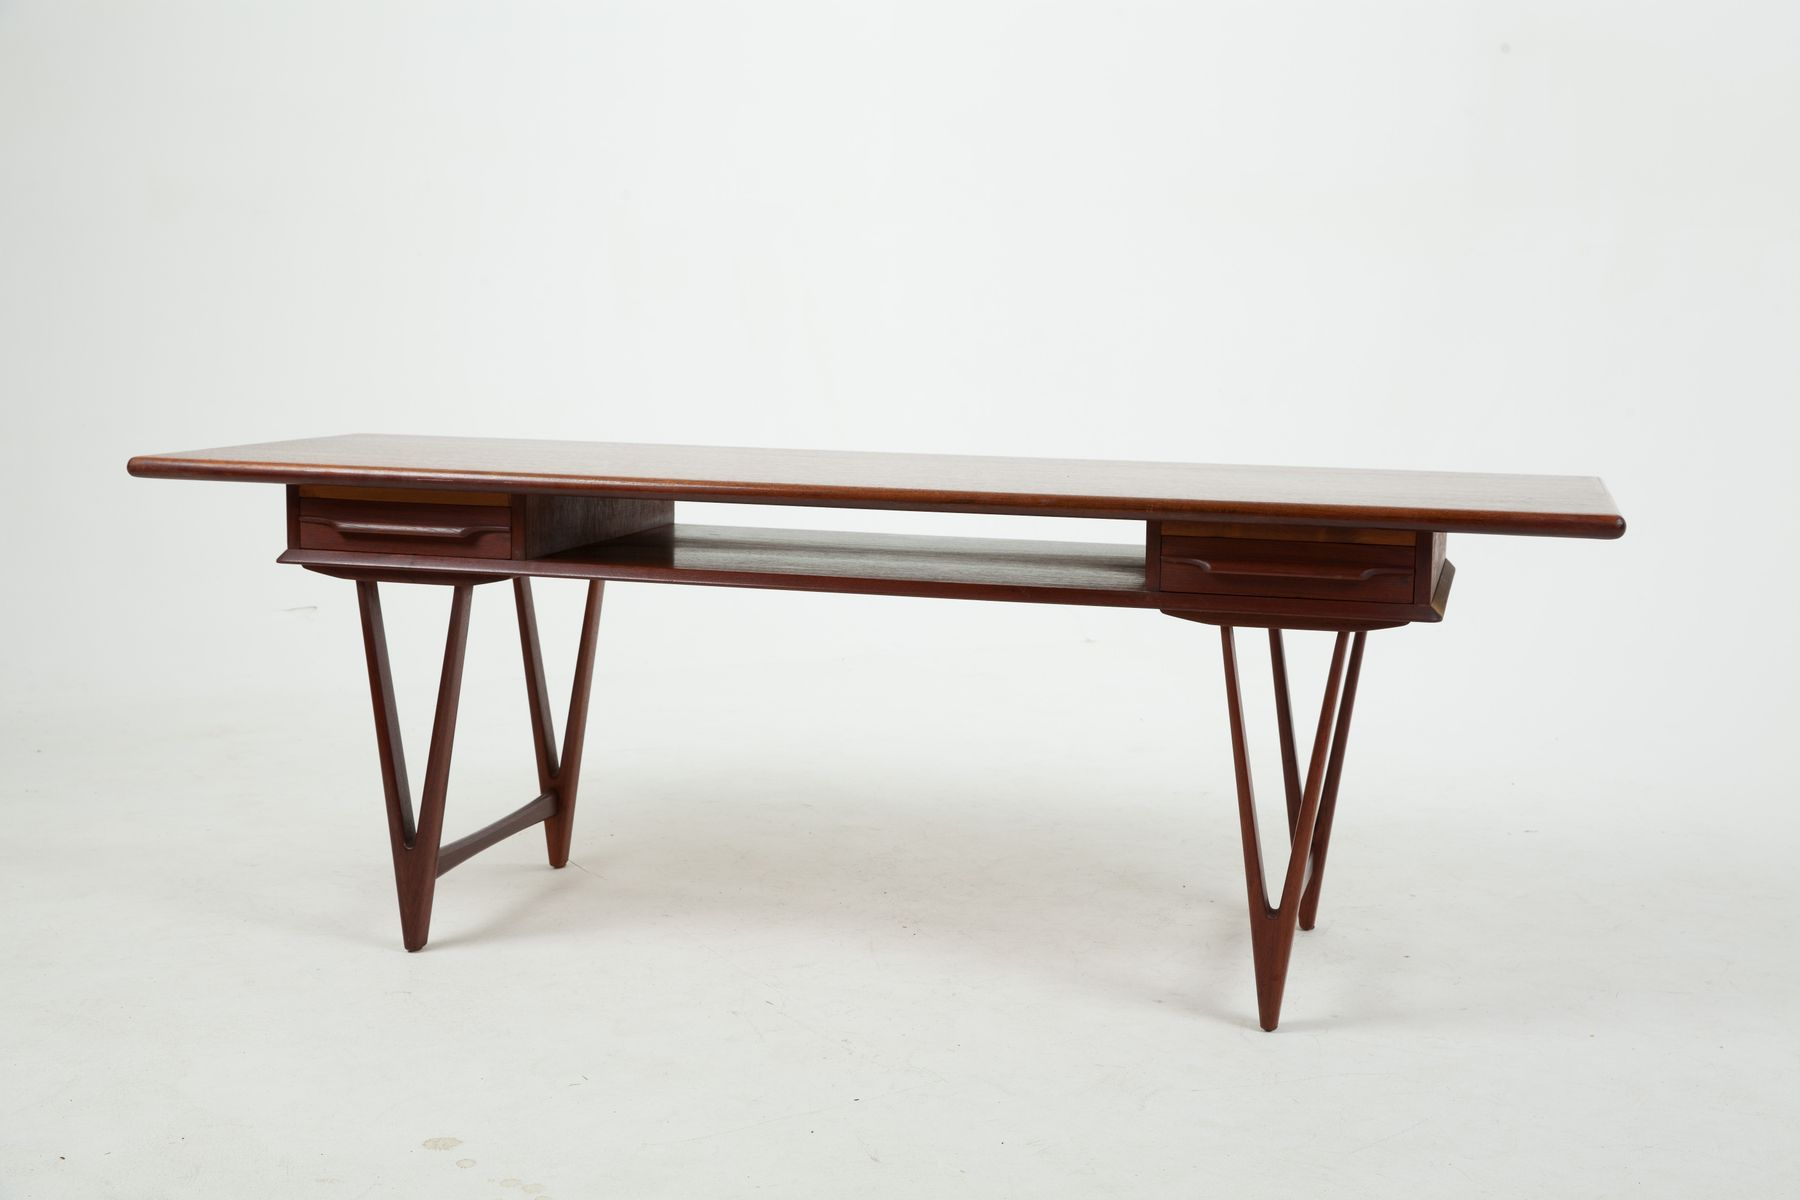 Danish teak coffee table by ew bach for toften 1960s for sale danish teak coffee table by ew bach for toften 1960s geotapseo Images